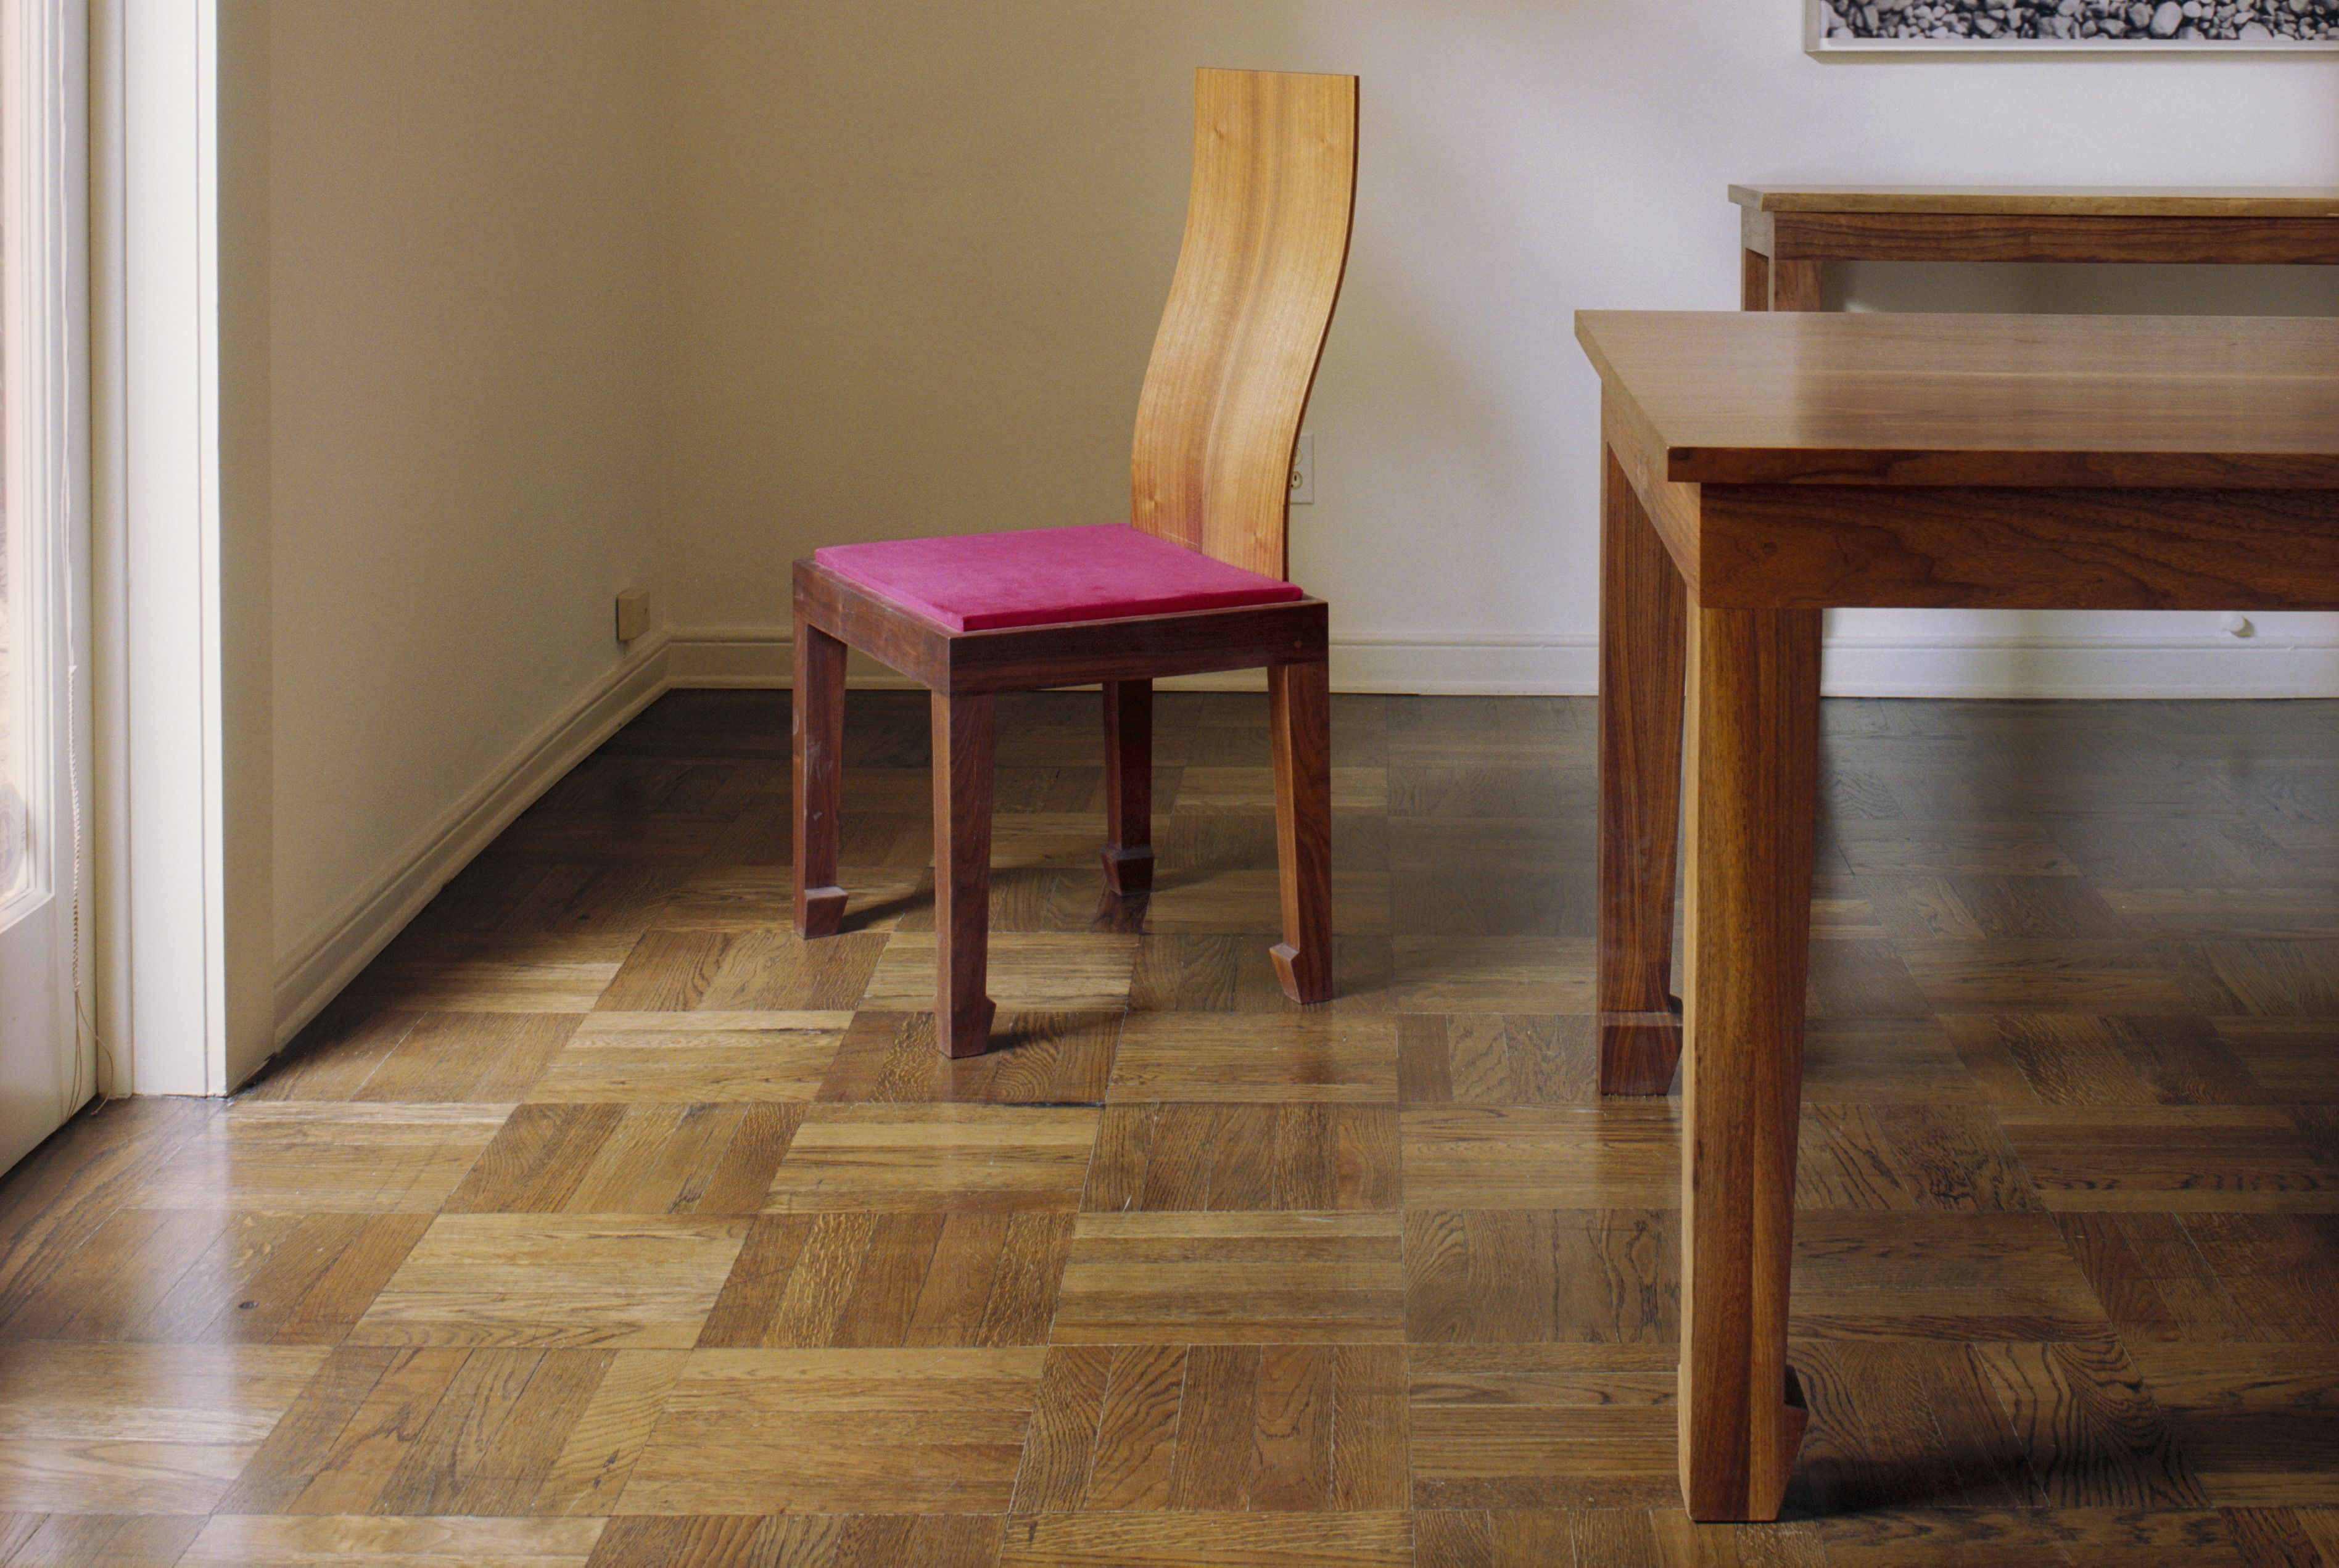 hardwood floor tile inlay of wood parquet flooring poised for a resurgence with regard to wood parquet flooring 529502452 576c78195f9b585875a1ac13